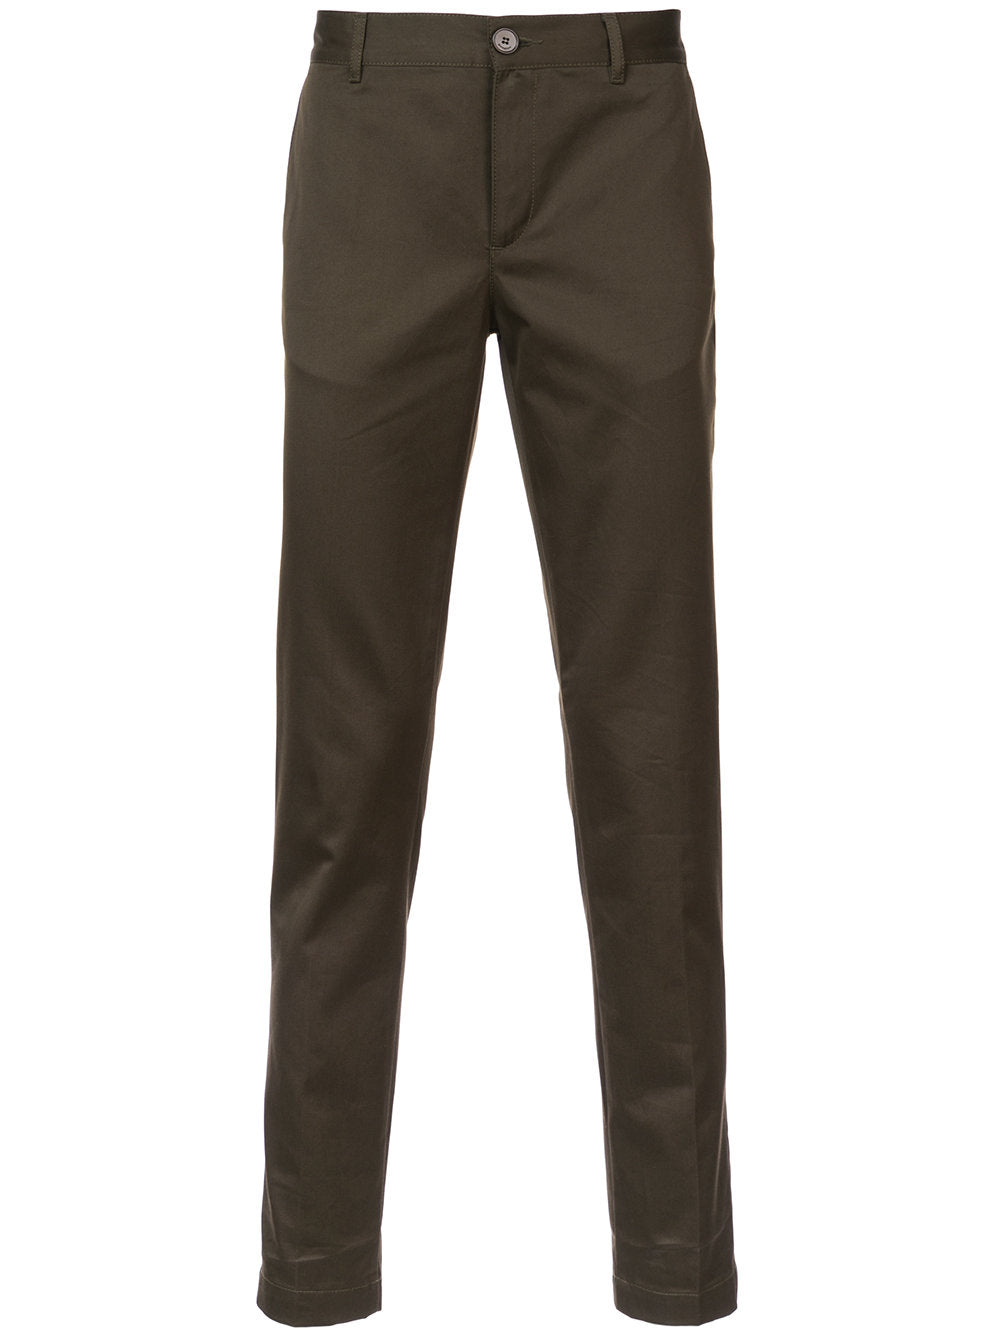 Tailored Trouser-dark green - THE UNIQUE FIT